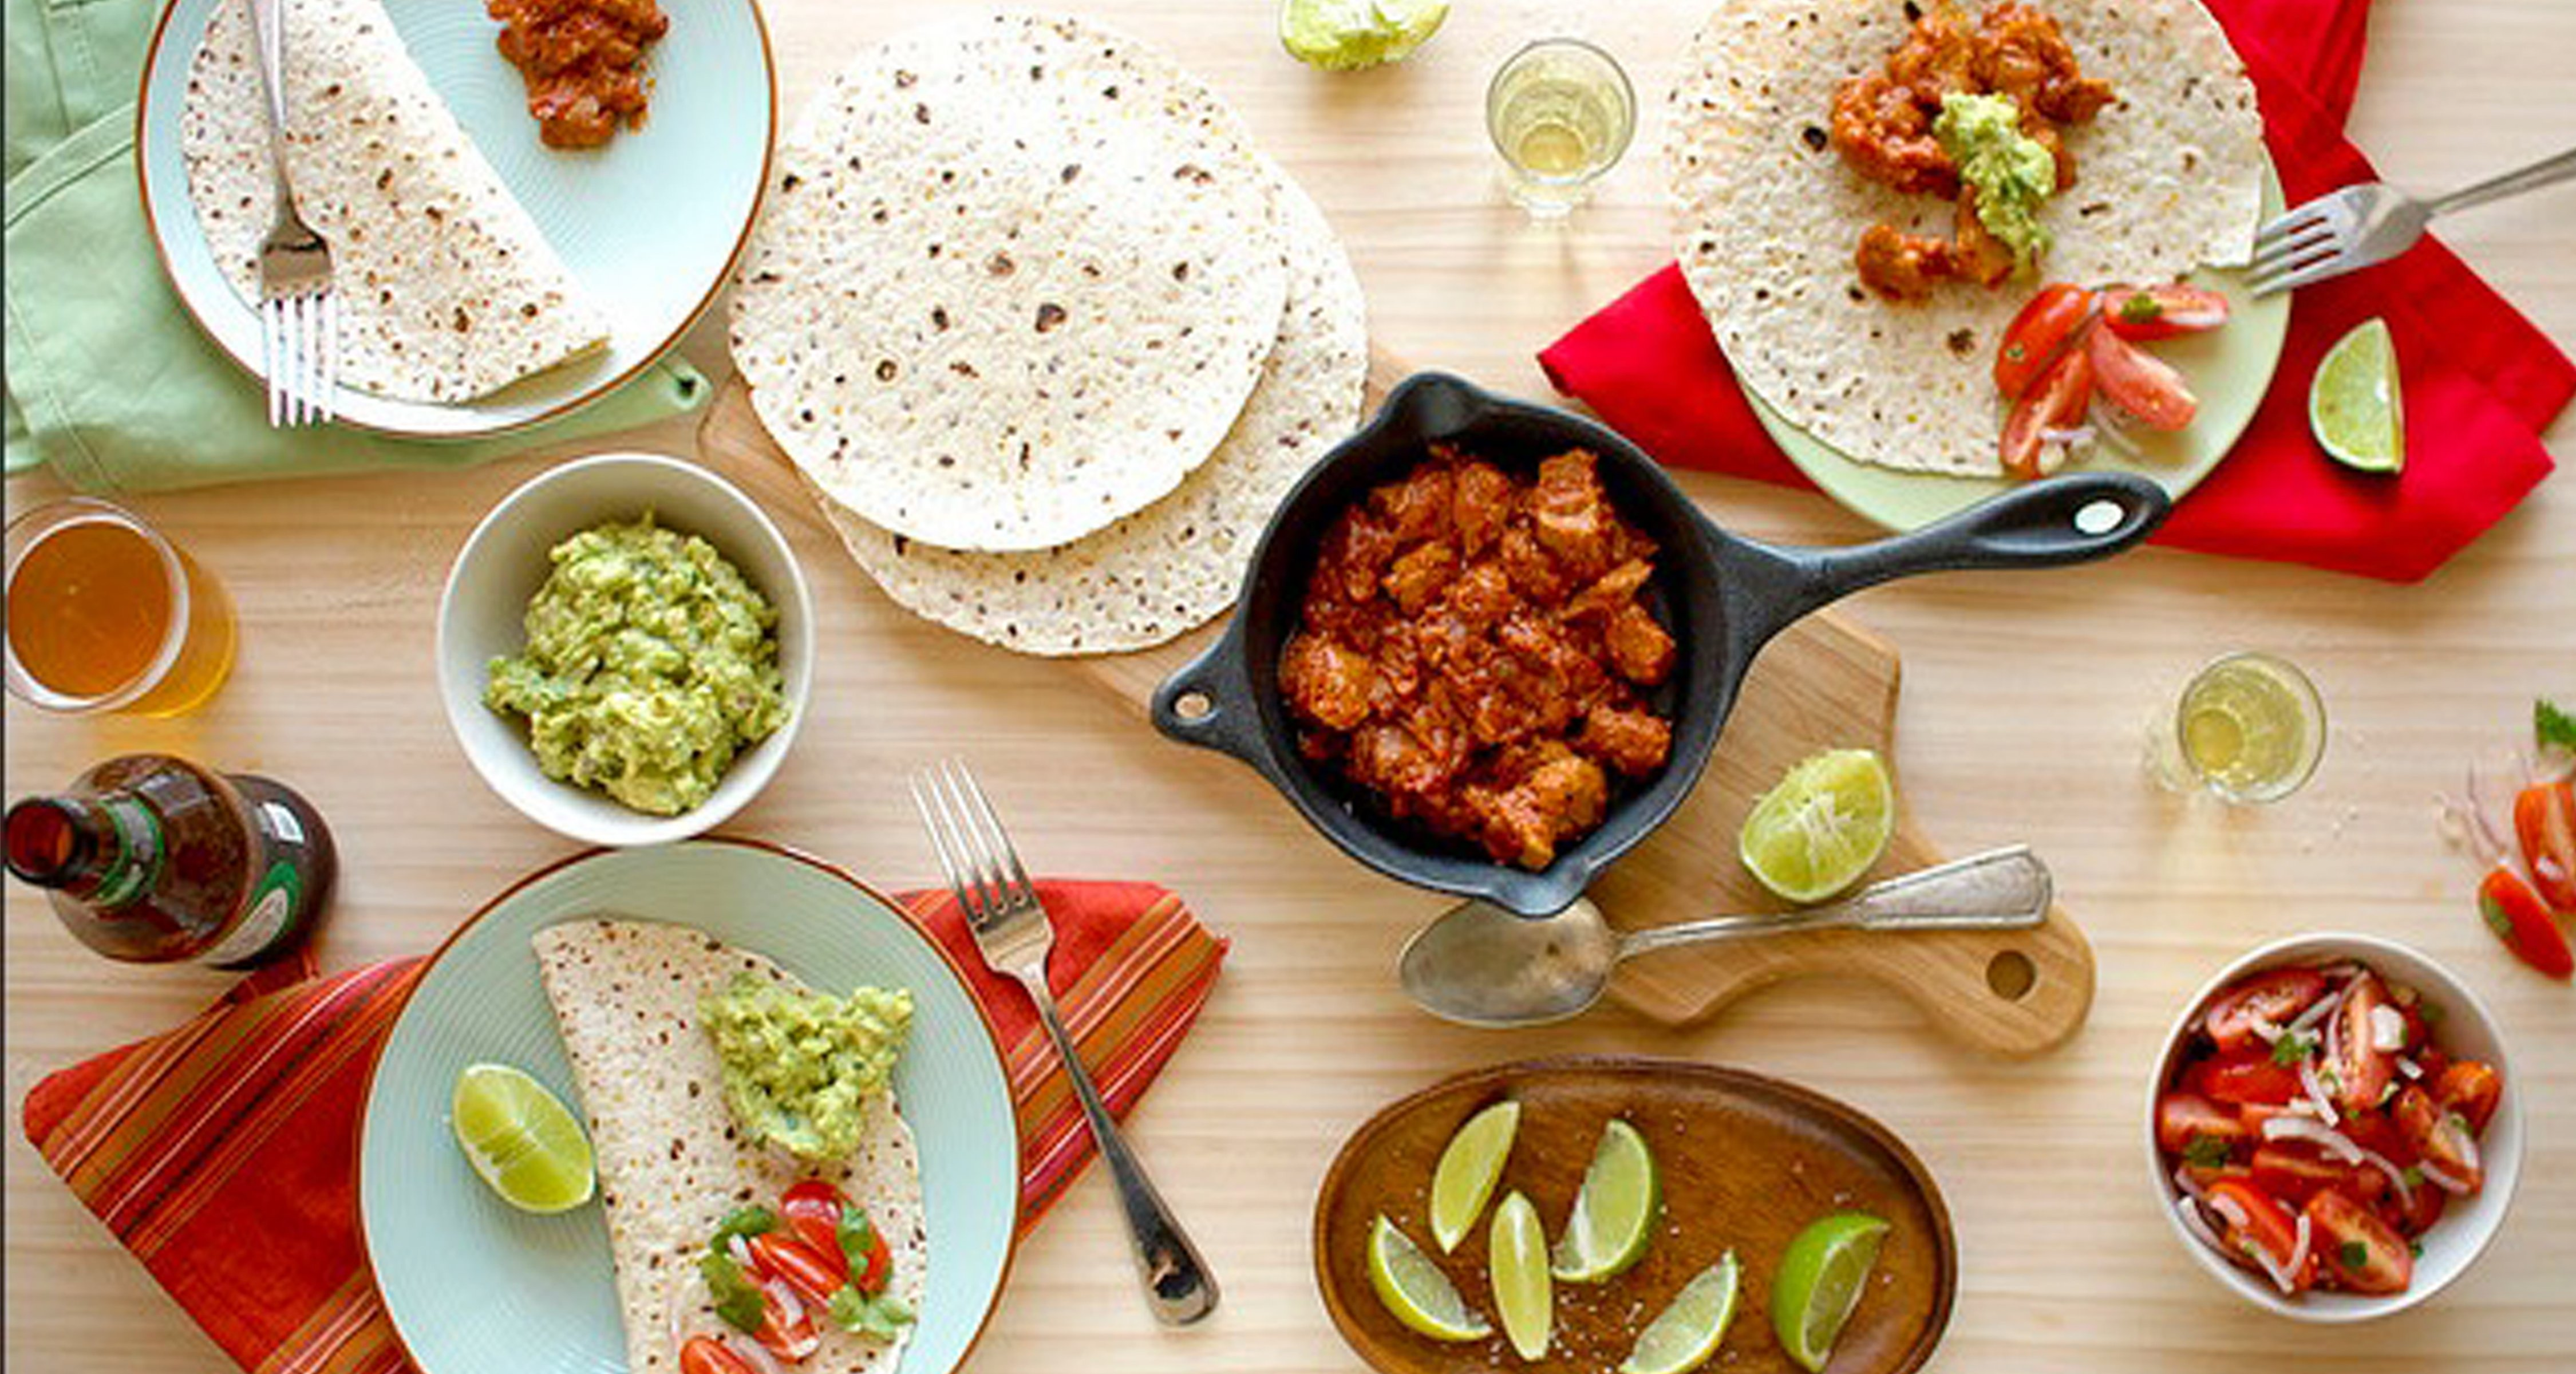 Mexican Food Dinner Lunch Mexico Spanish Wallpaper 4500x2400 656678 Wallpaperup